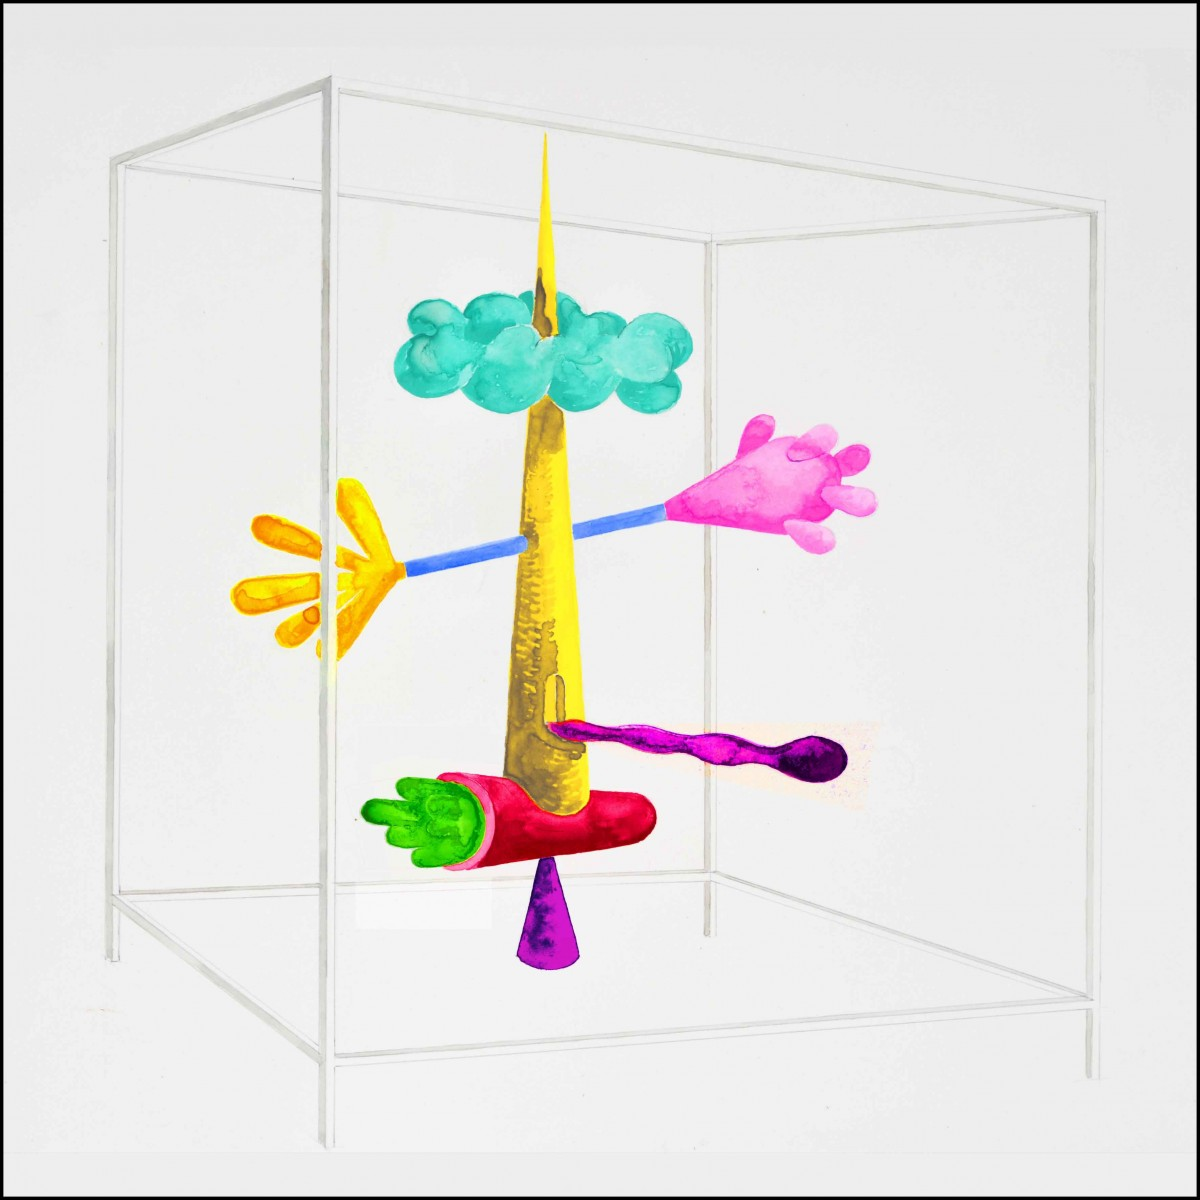 Cell 2. Sculpture imagined displayed in bright colours.